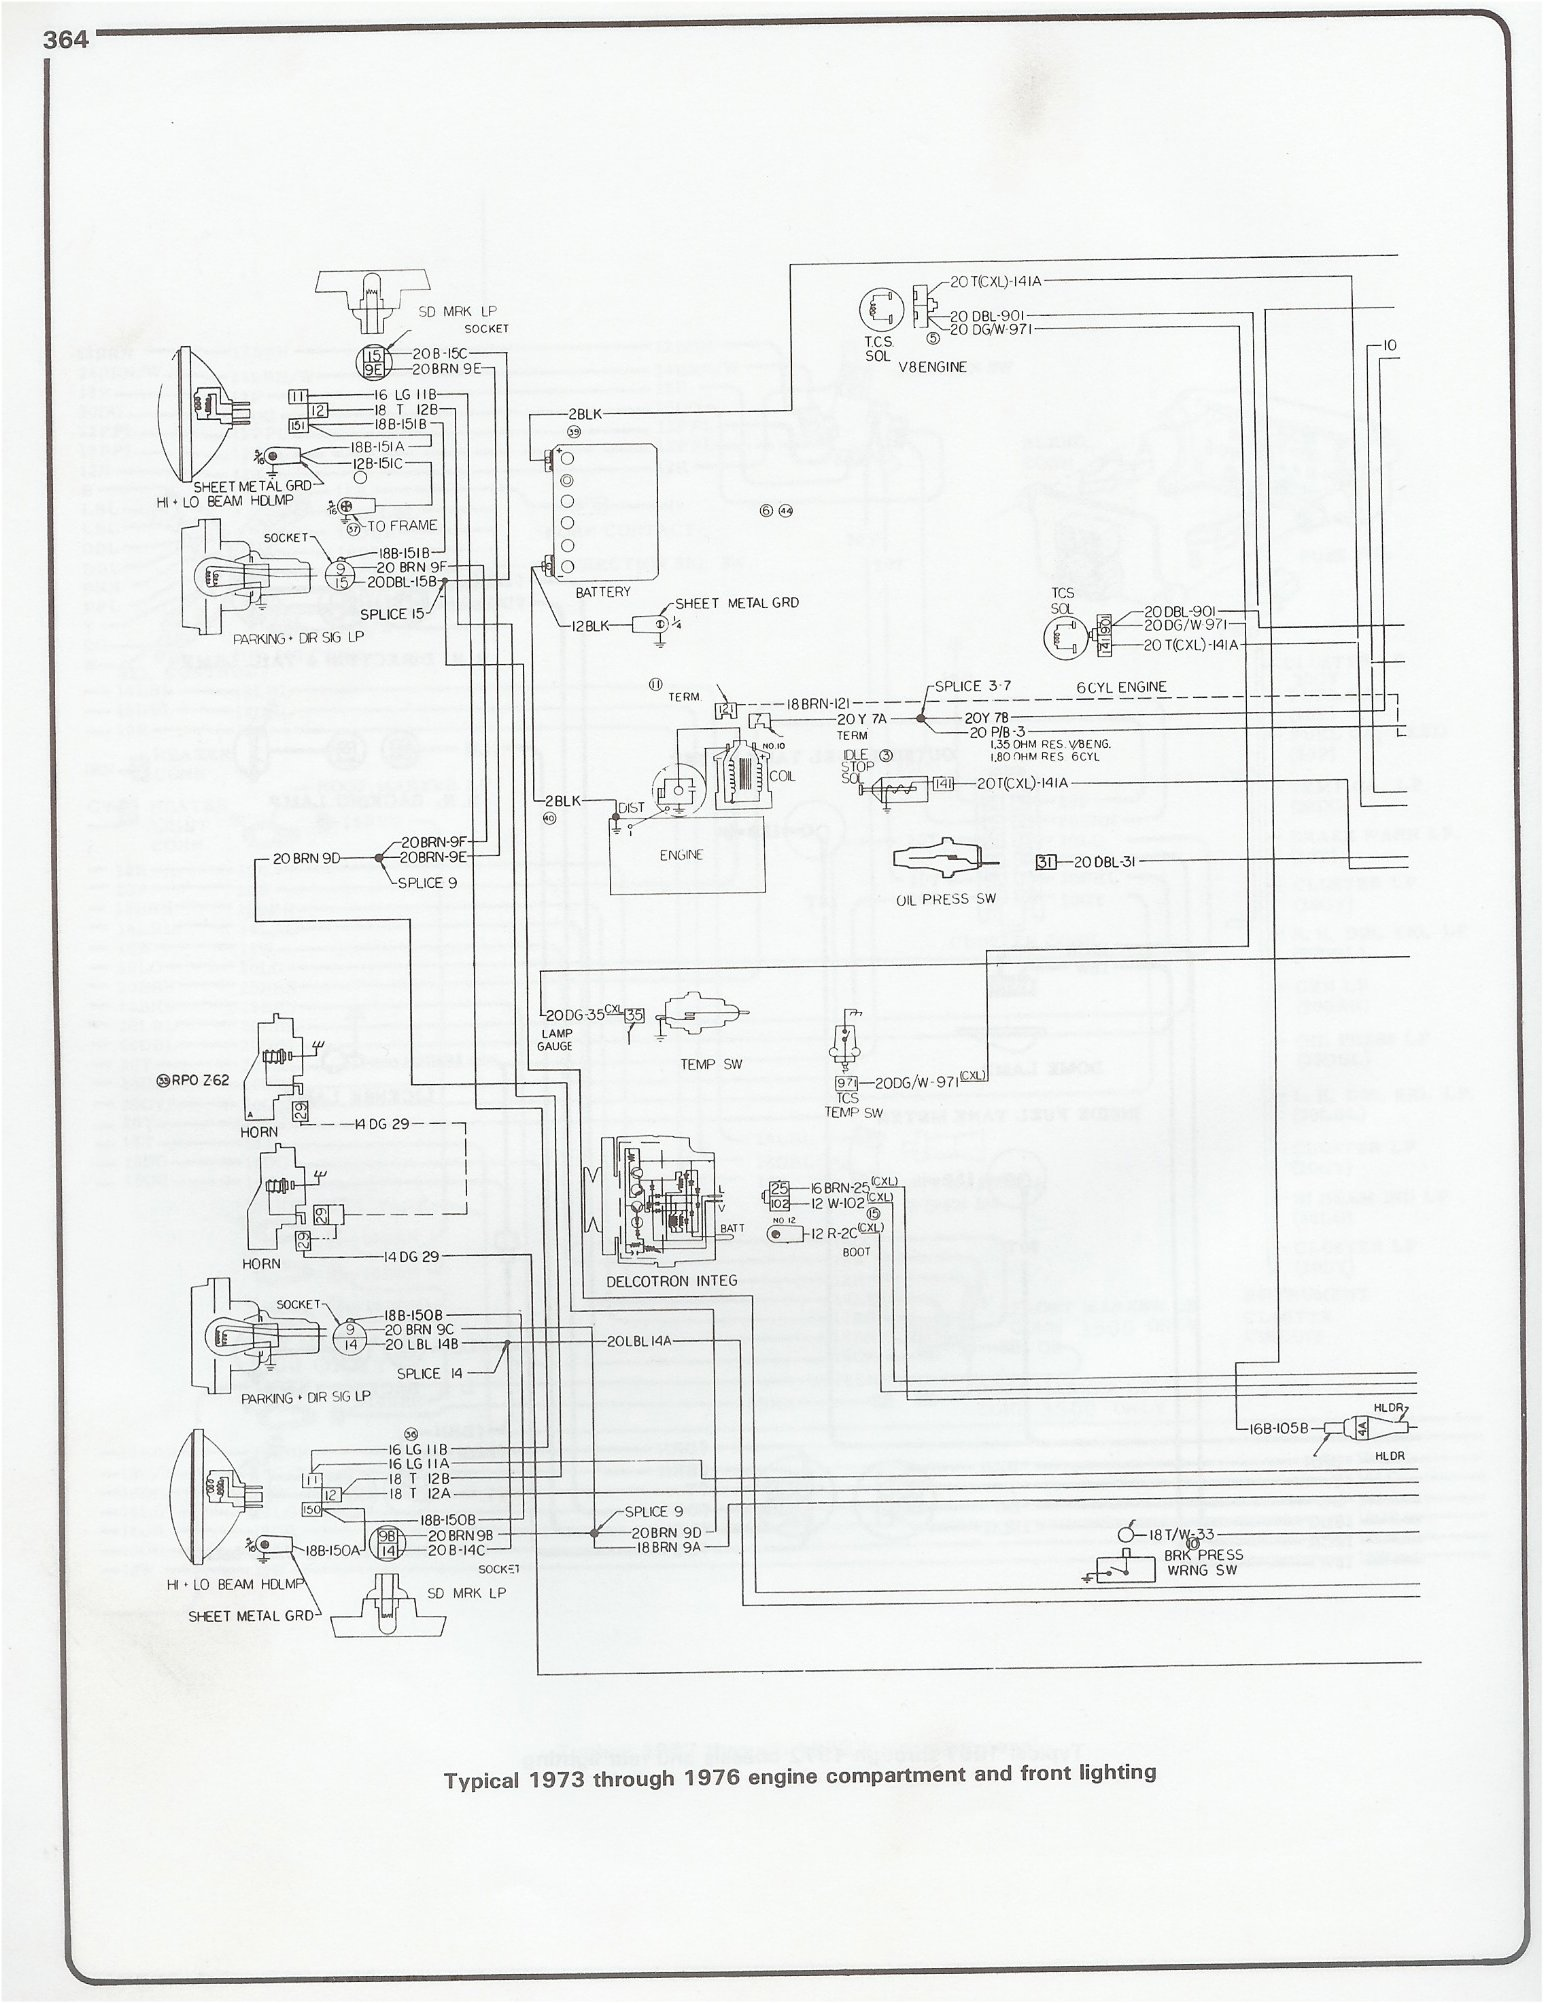 DIAGRAM] Fuse Box Wiring Diagram 76 Corvette FULL Version HD Quality 76  Corvette - SHORTBOOKZ.FOTOCOMP.ITfotocomp.it